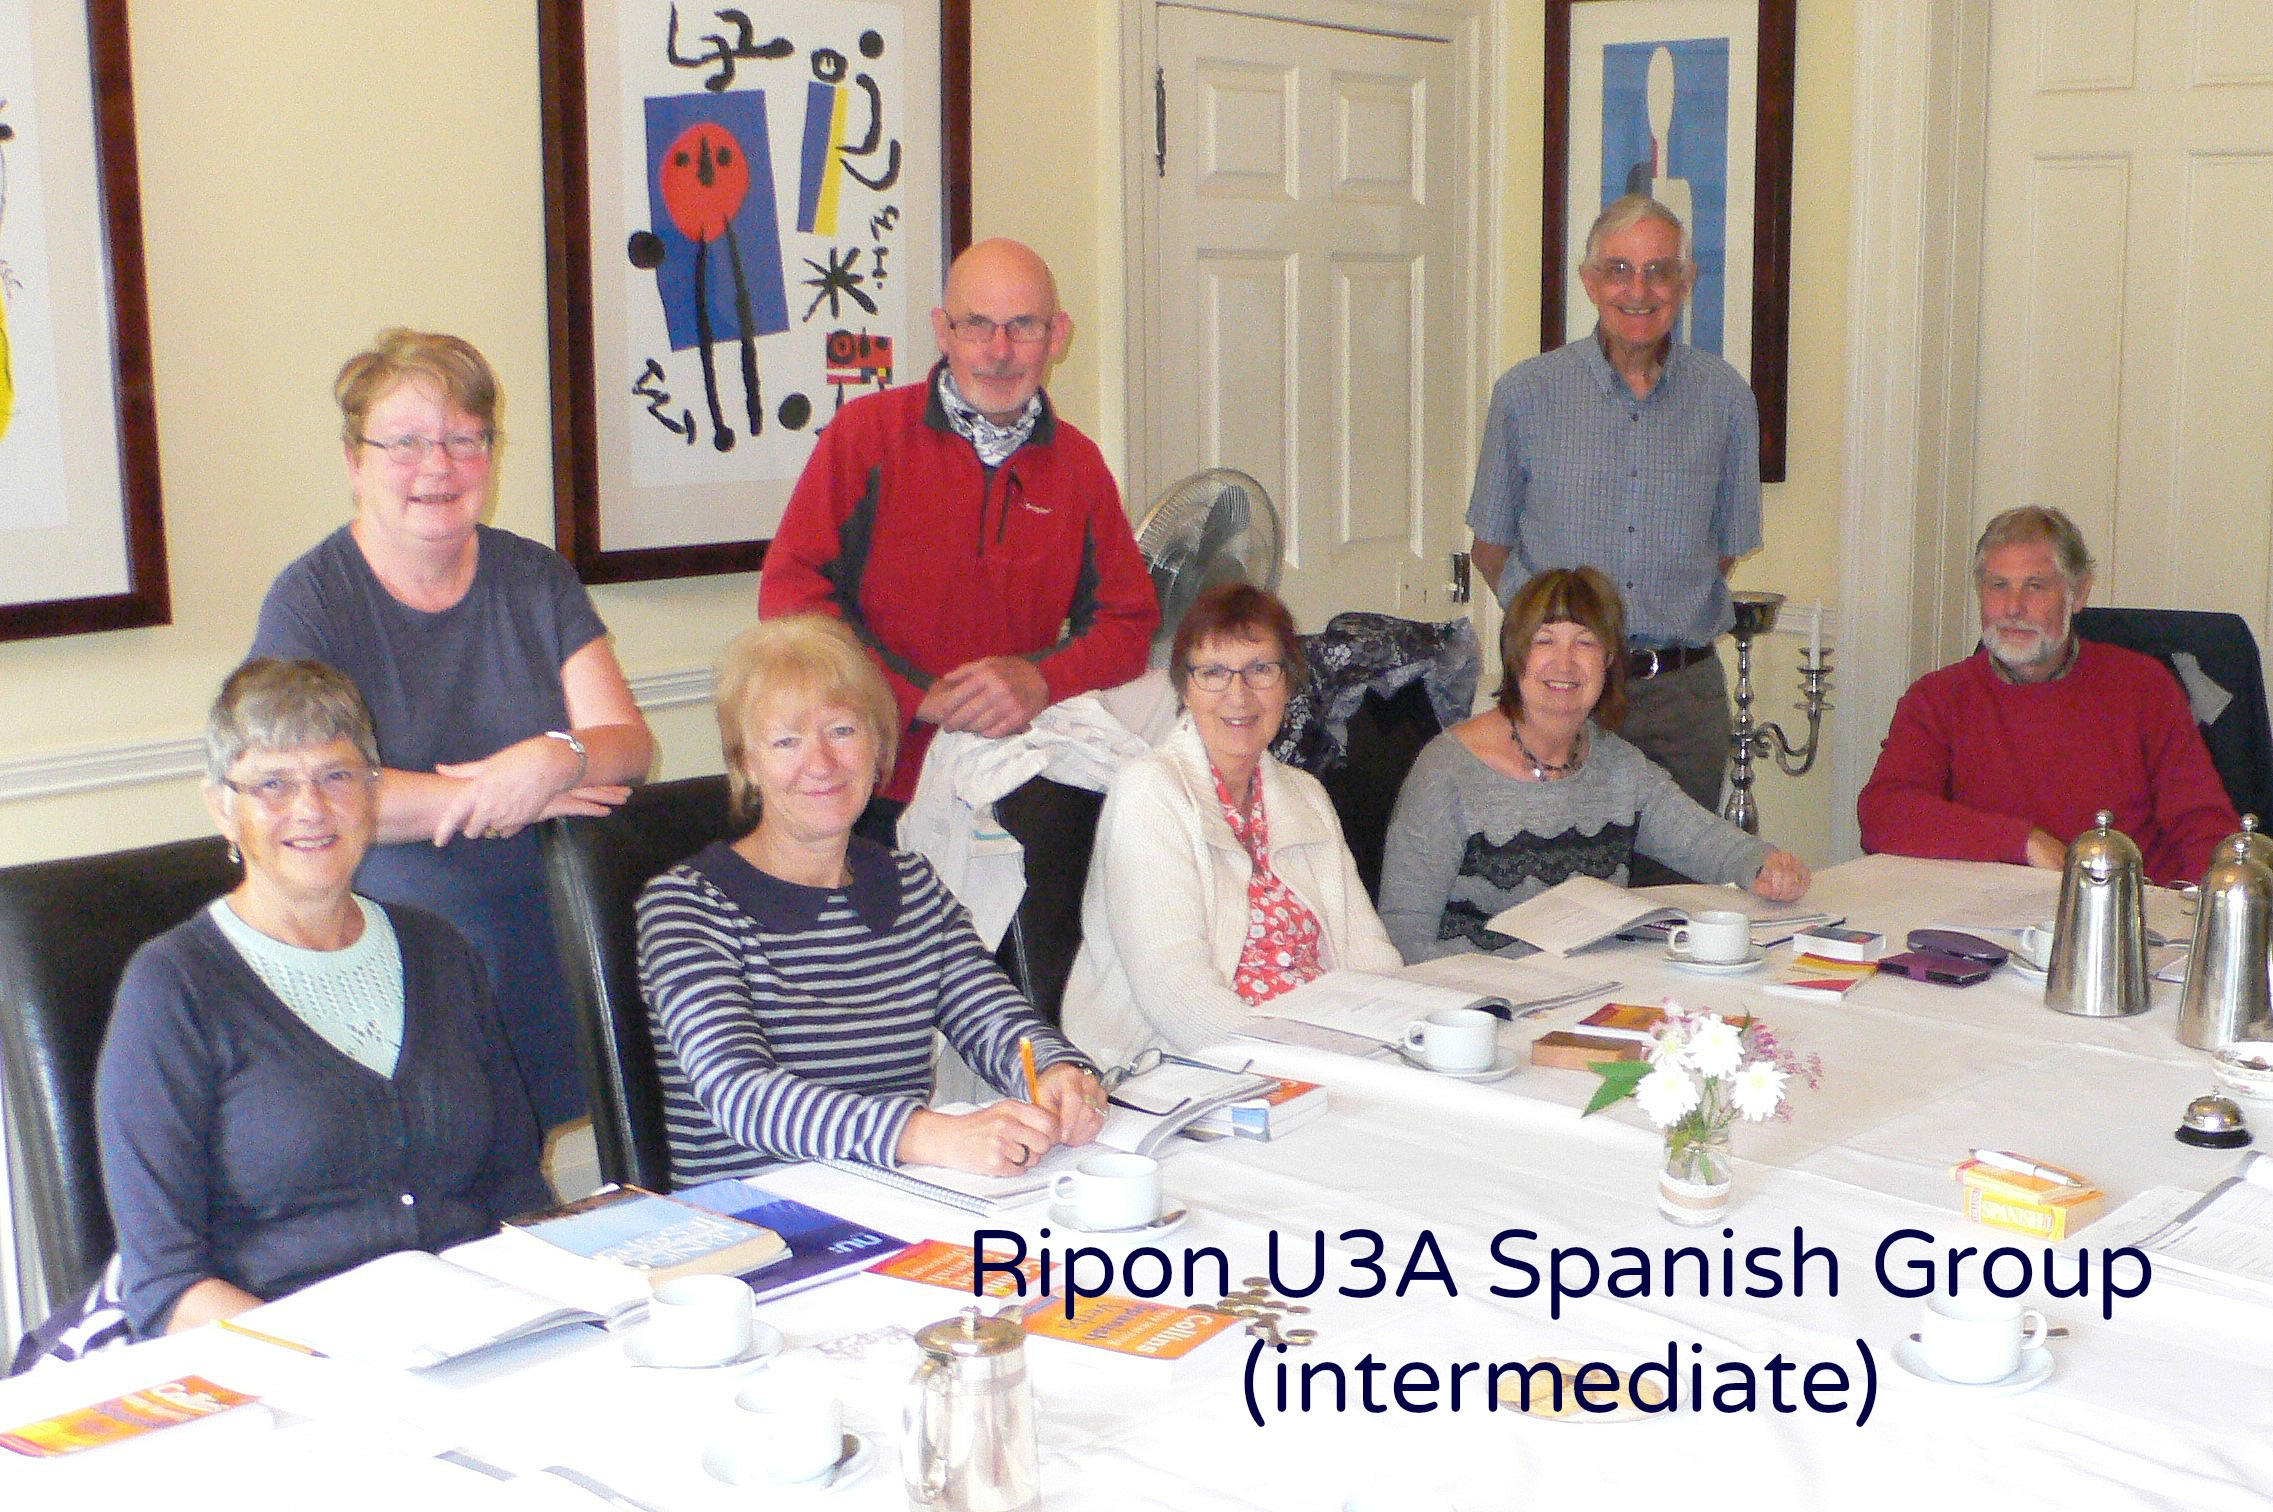 Some of the Spanish Group members